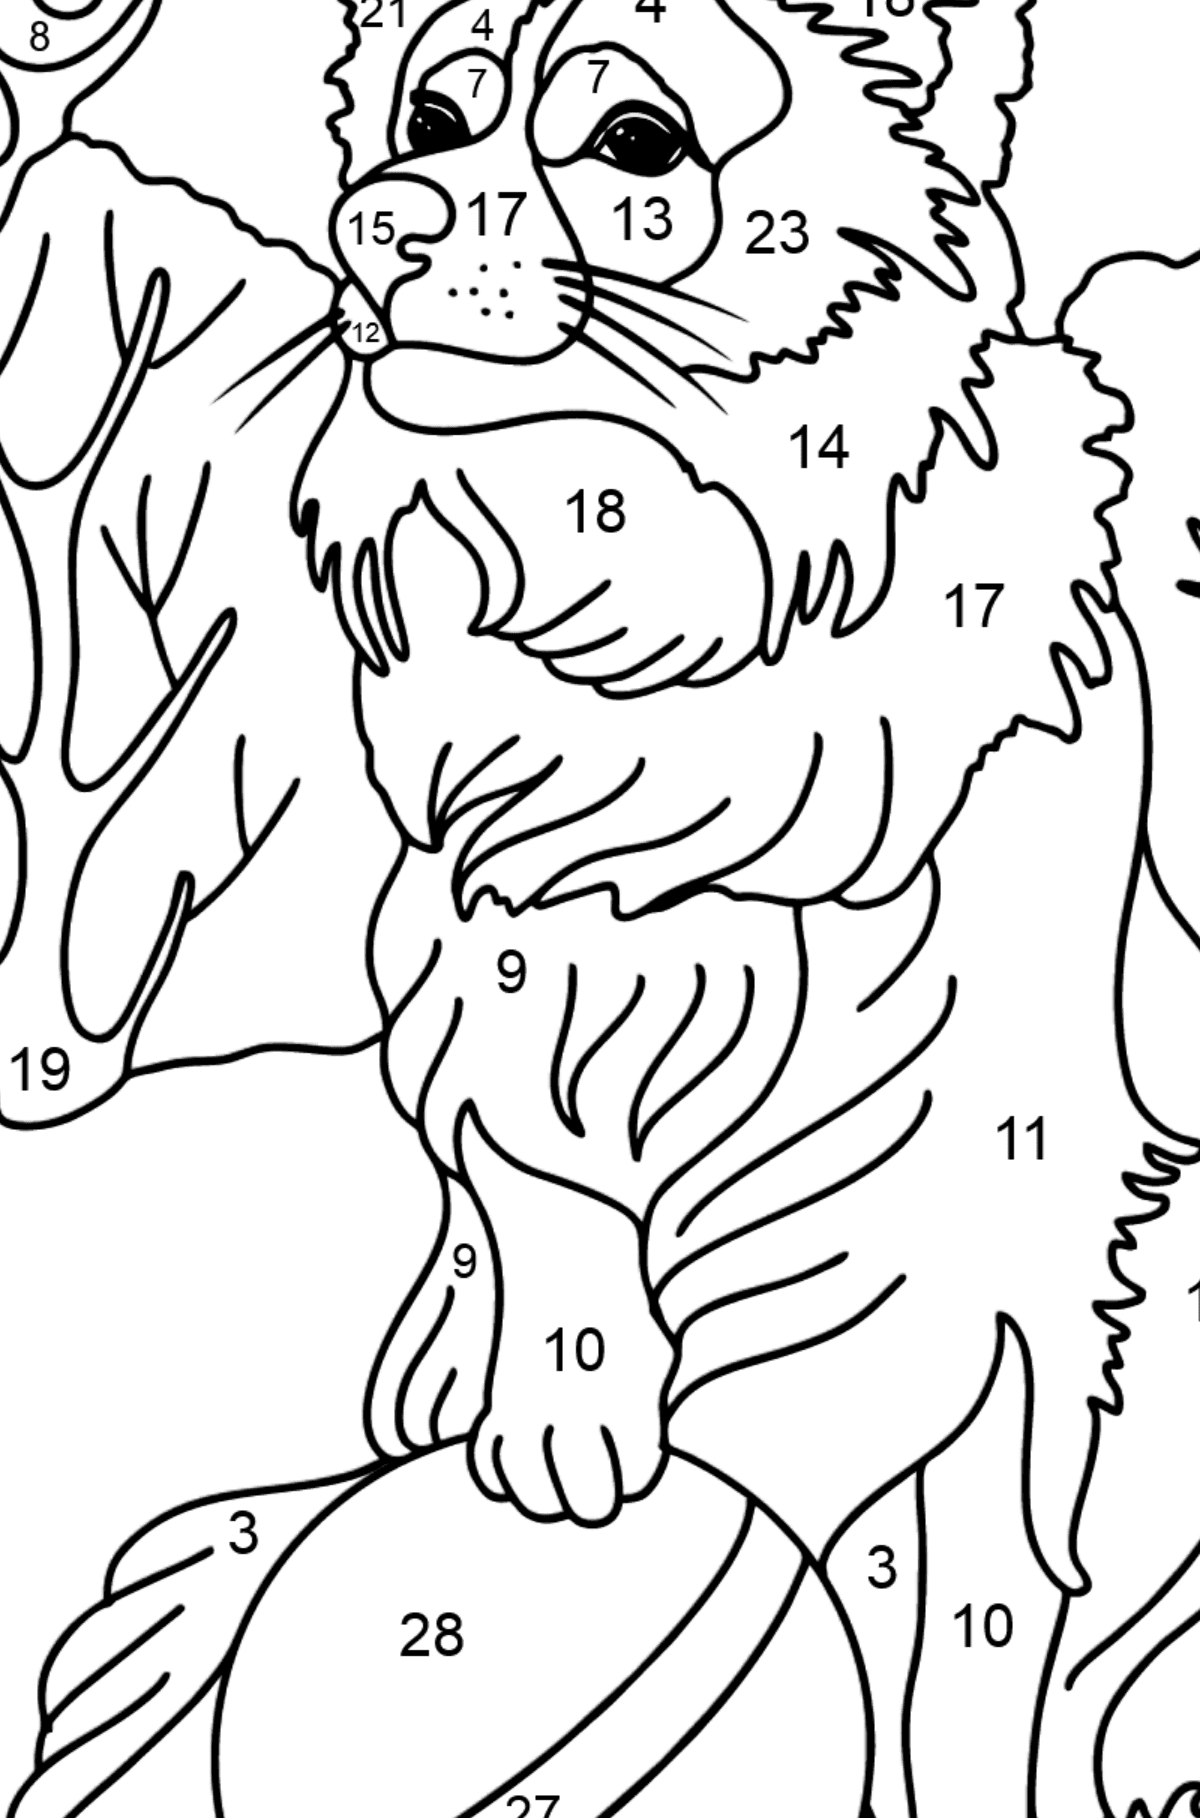 Collie coloring page - Coloring by Numbers for Kids